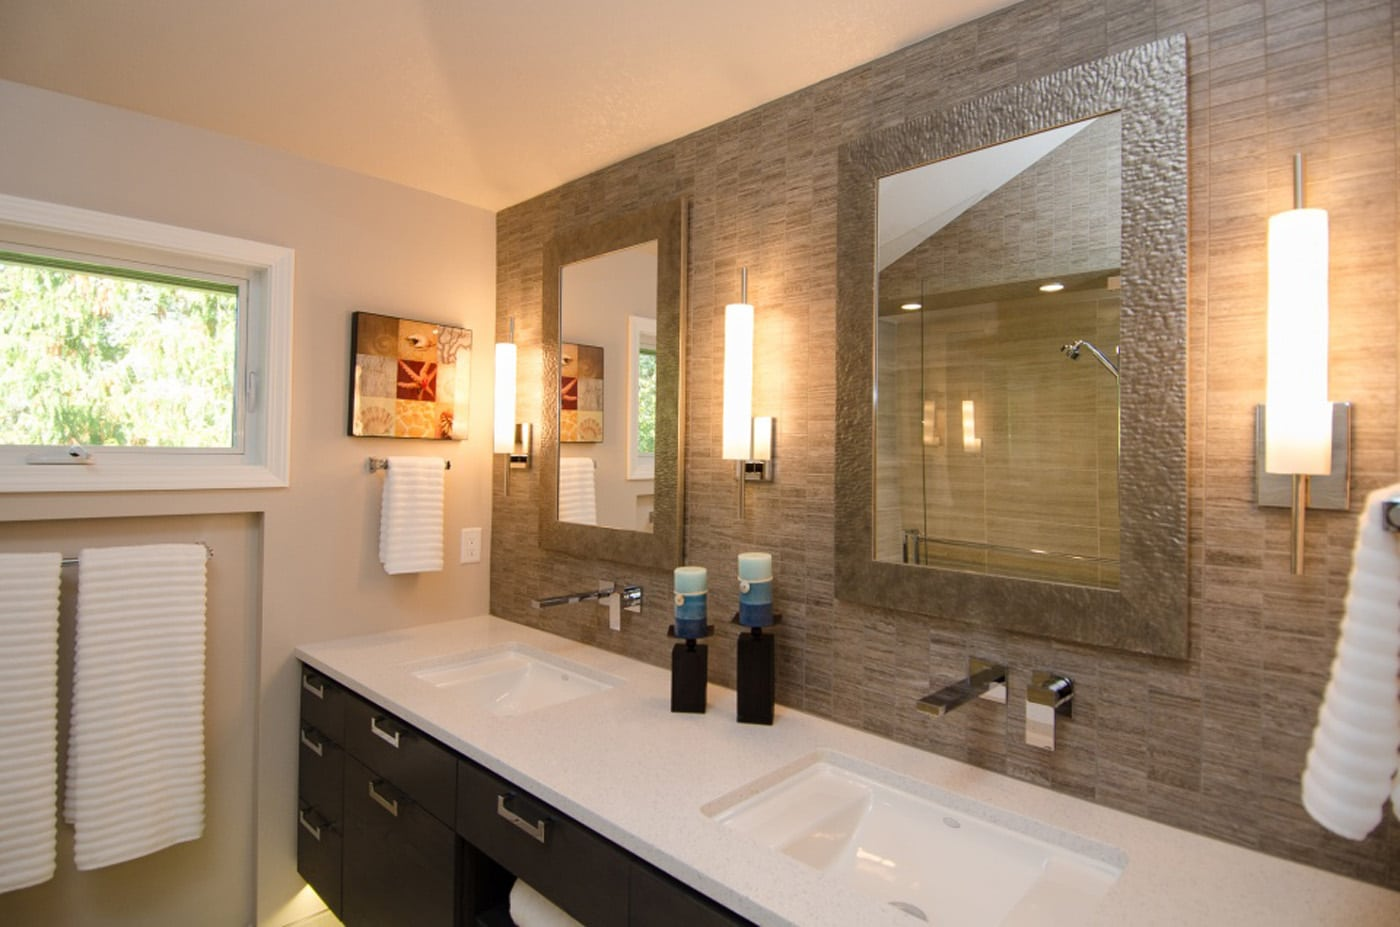 Pangaea Interior Design | Contemporary Master Bathroom with Vaulted on contemporary kitchen design, contemporary master bathroom remodeling ideas, modern bedroom designs, master bedroom contemporary designs, contemporary hallway designs, contemporary entry designs, contemporary pantry designs, contemporary bathroom vanities, contemporary master bathroom decorating ideas, contemporary media room designs, contemporary luxury master bathrooms, contemporary landscaping designs, contemporary master bathroom plans, contemporary spa designs, contemporary shower design, contemporary bathroom designs ideas, contemporary open floor plan designs, contemporary water designs, contemporary den designs, contemporary walk in closet designs,